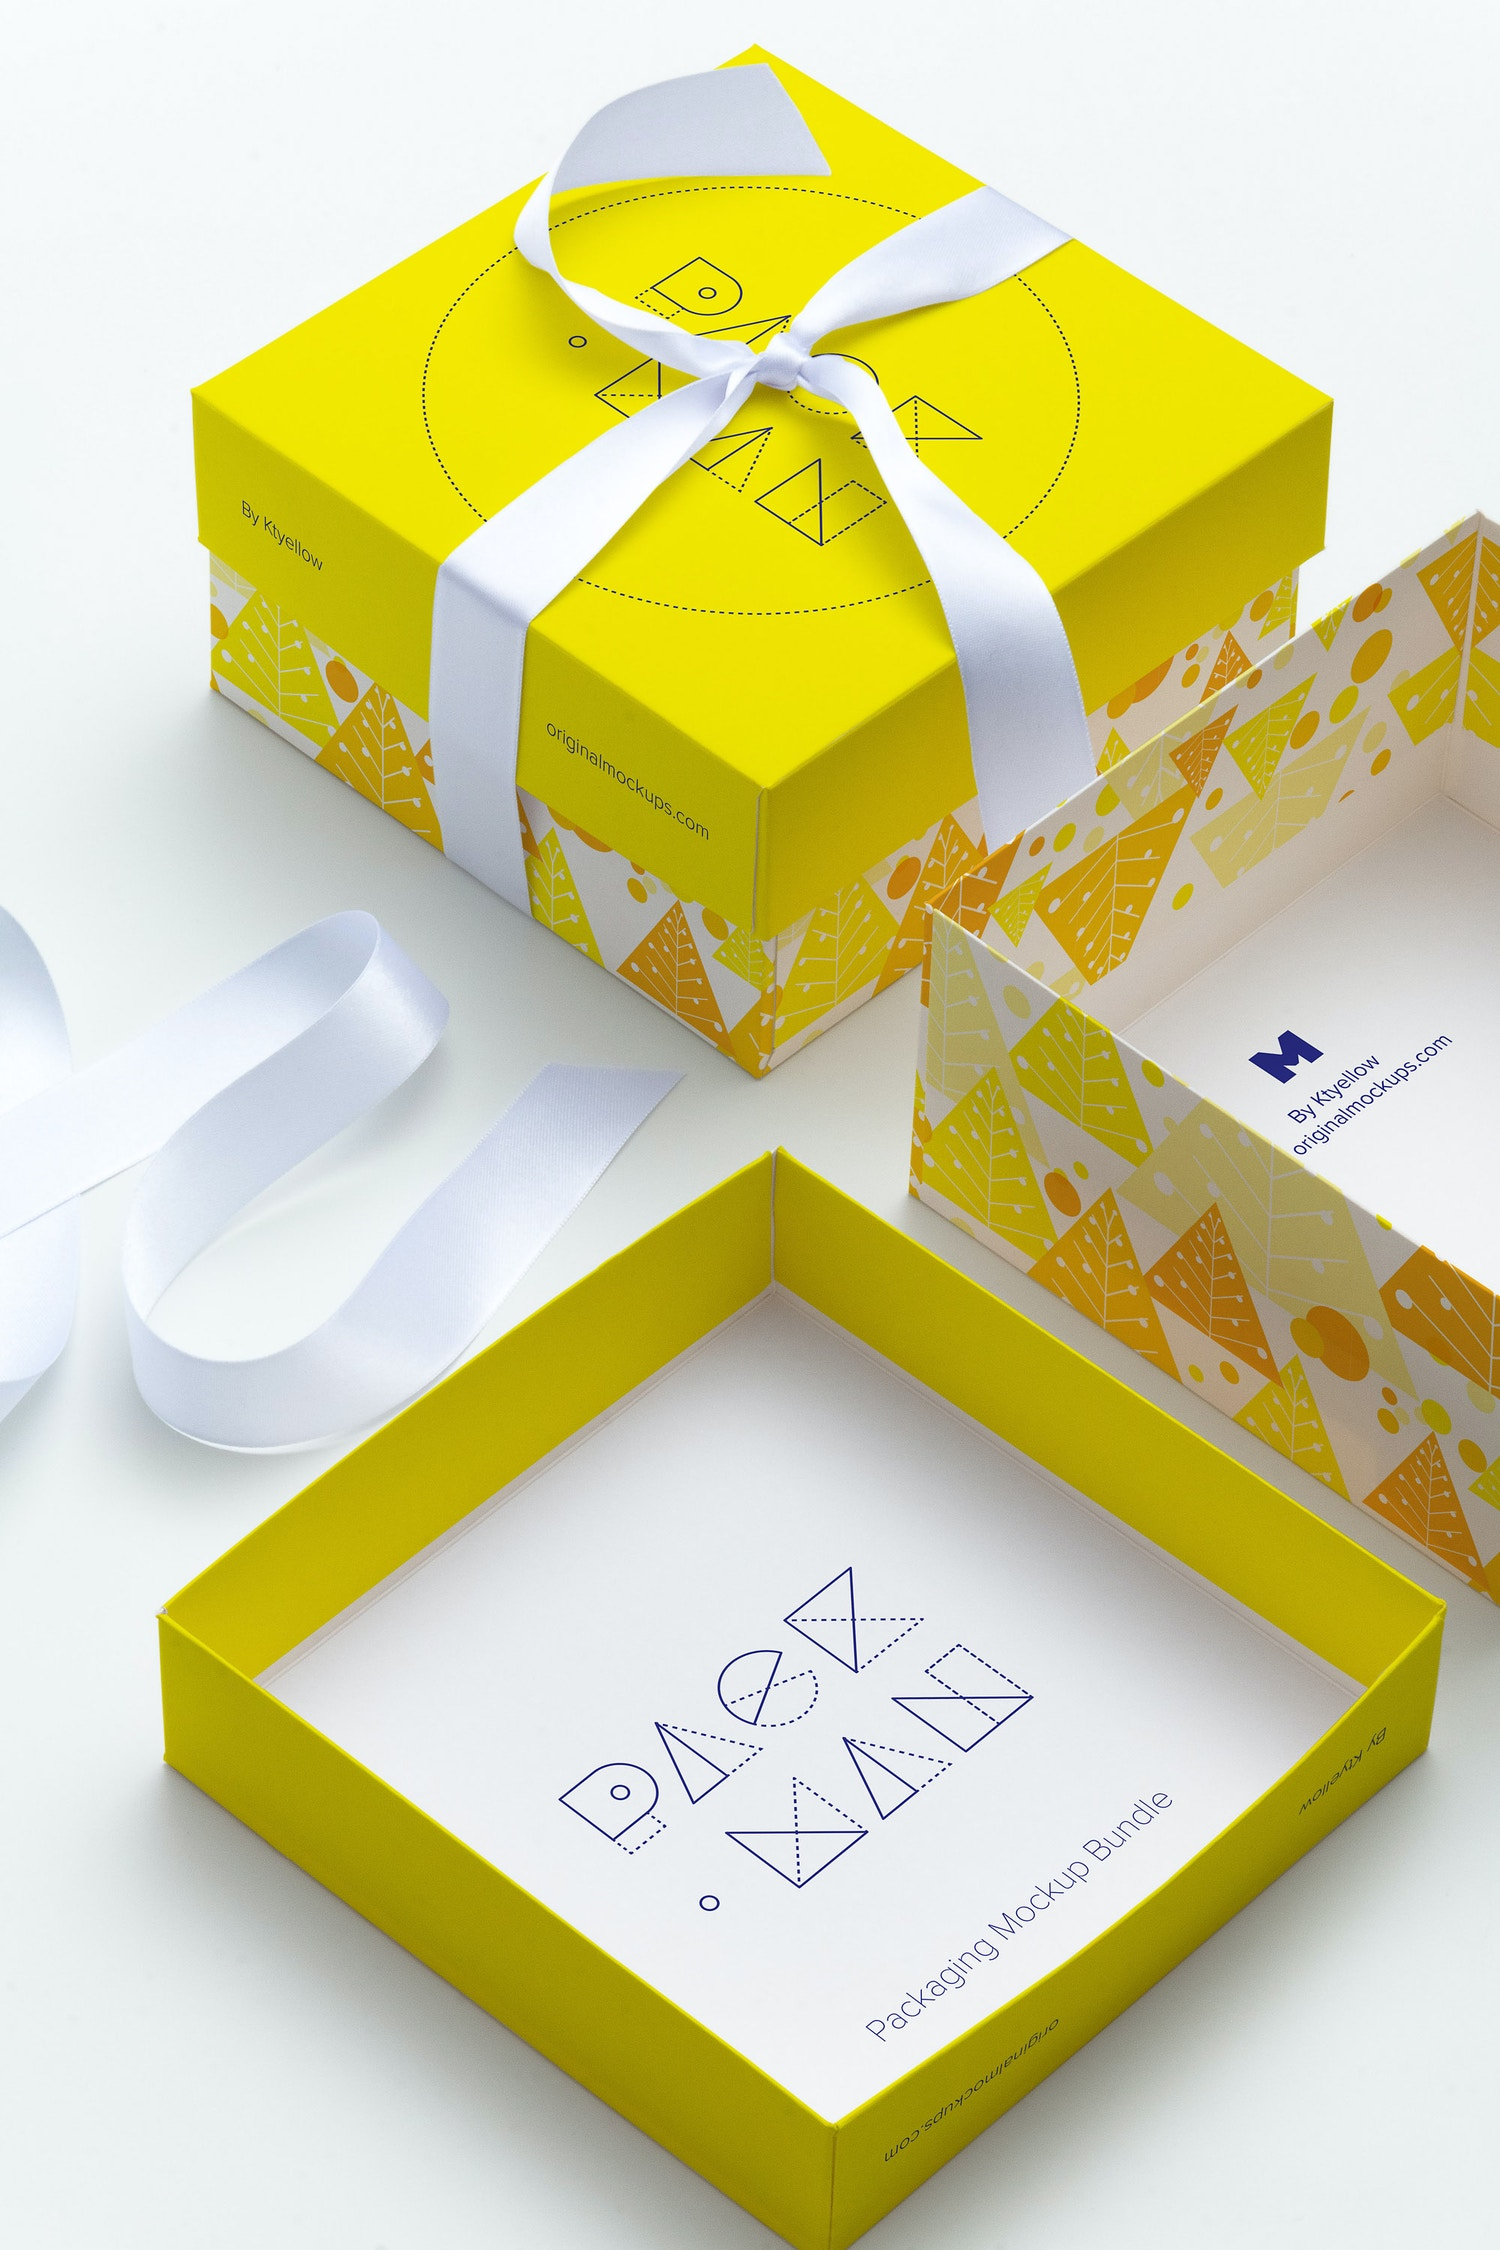 Big Gift Box Mockup 02 by Ktyellow  on Original Mockups